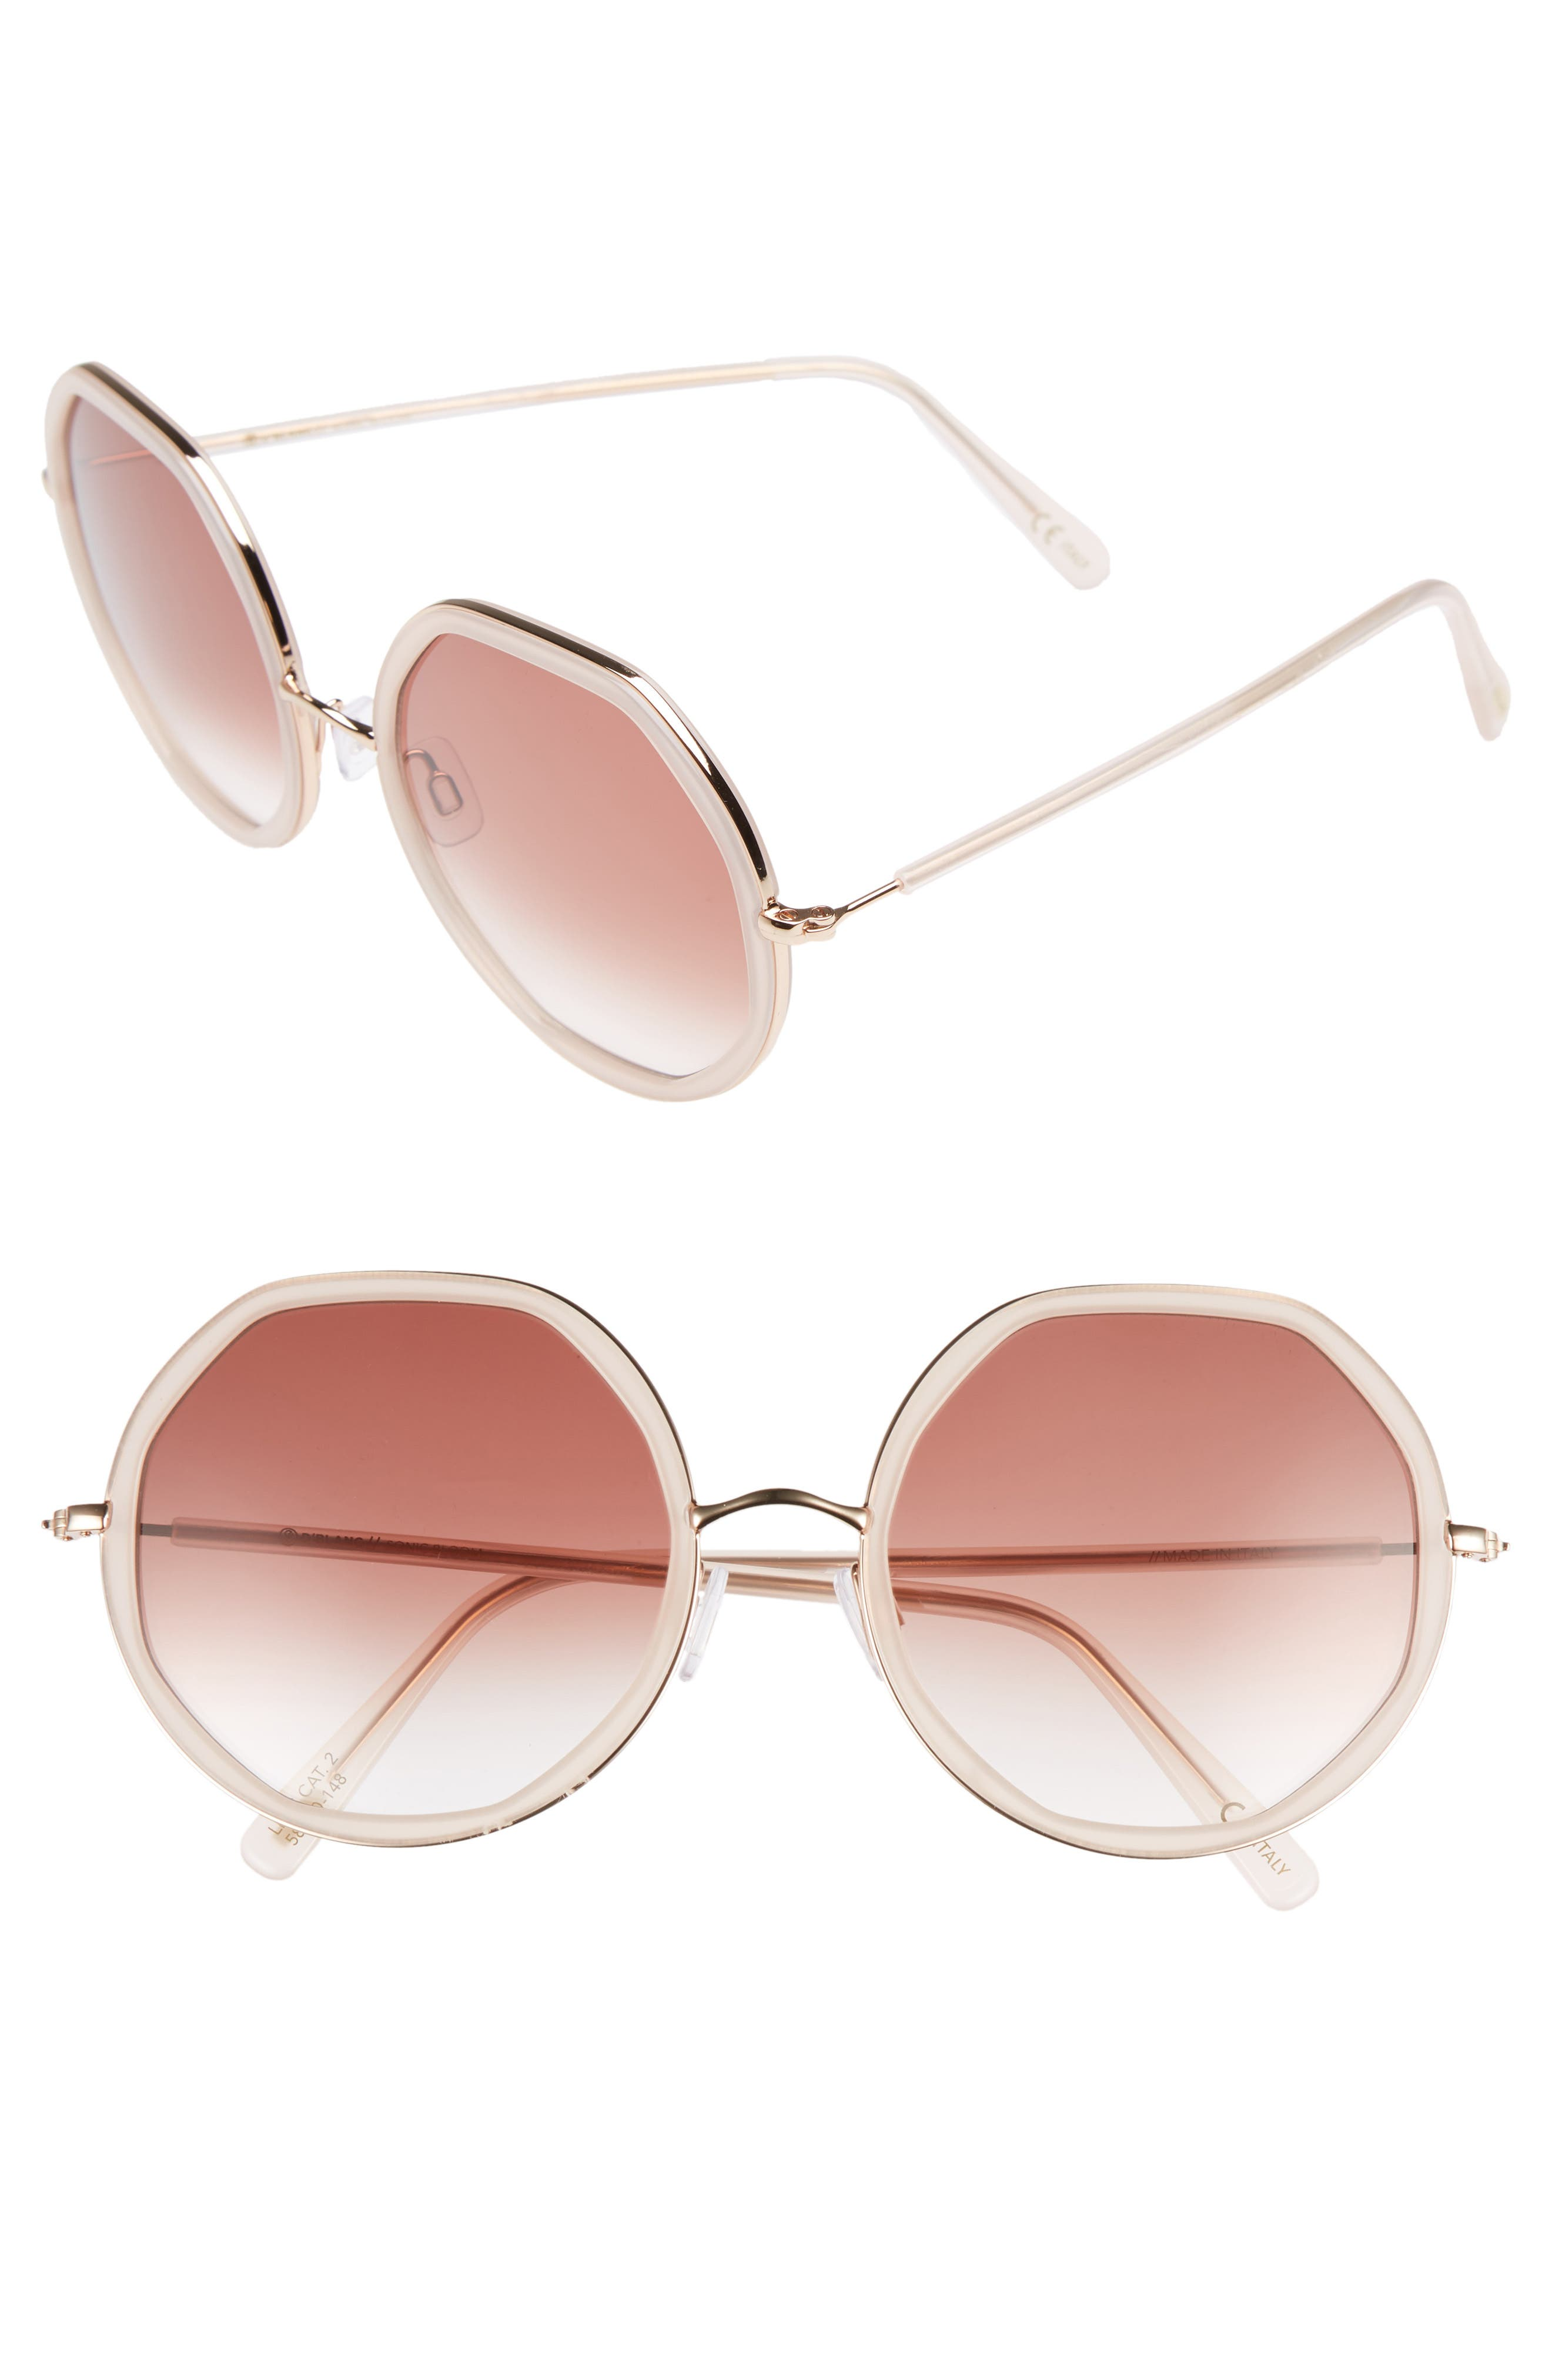 D'BLANC Sonic Bloom 58mm Sunglasses,                         Main,                         color, OCTAGON BLUSH